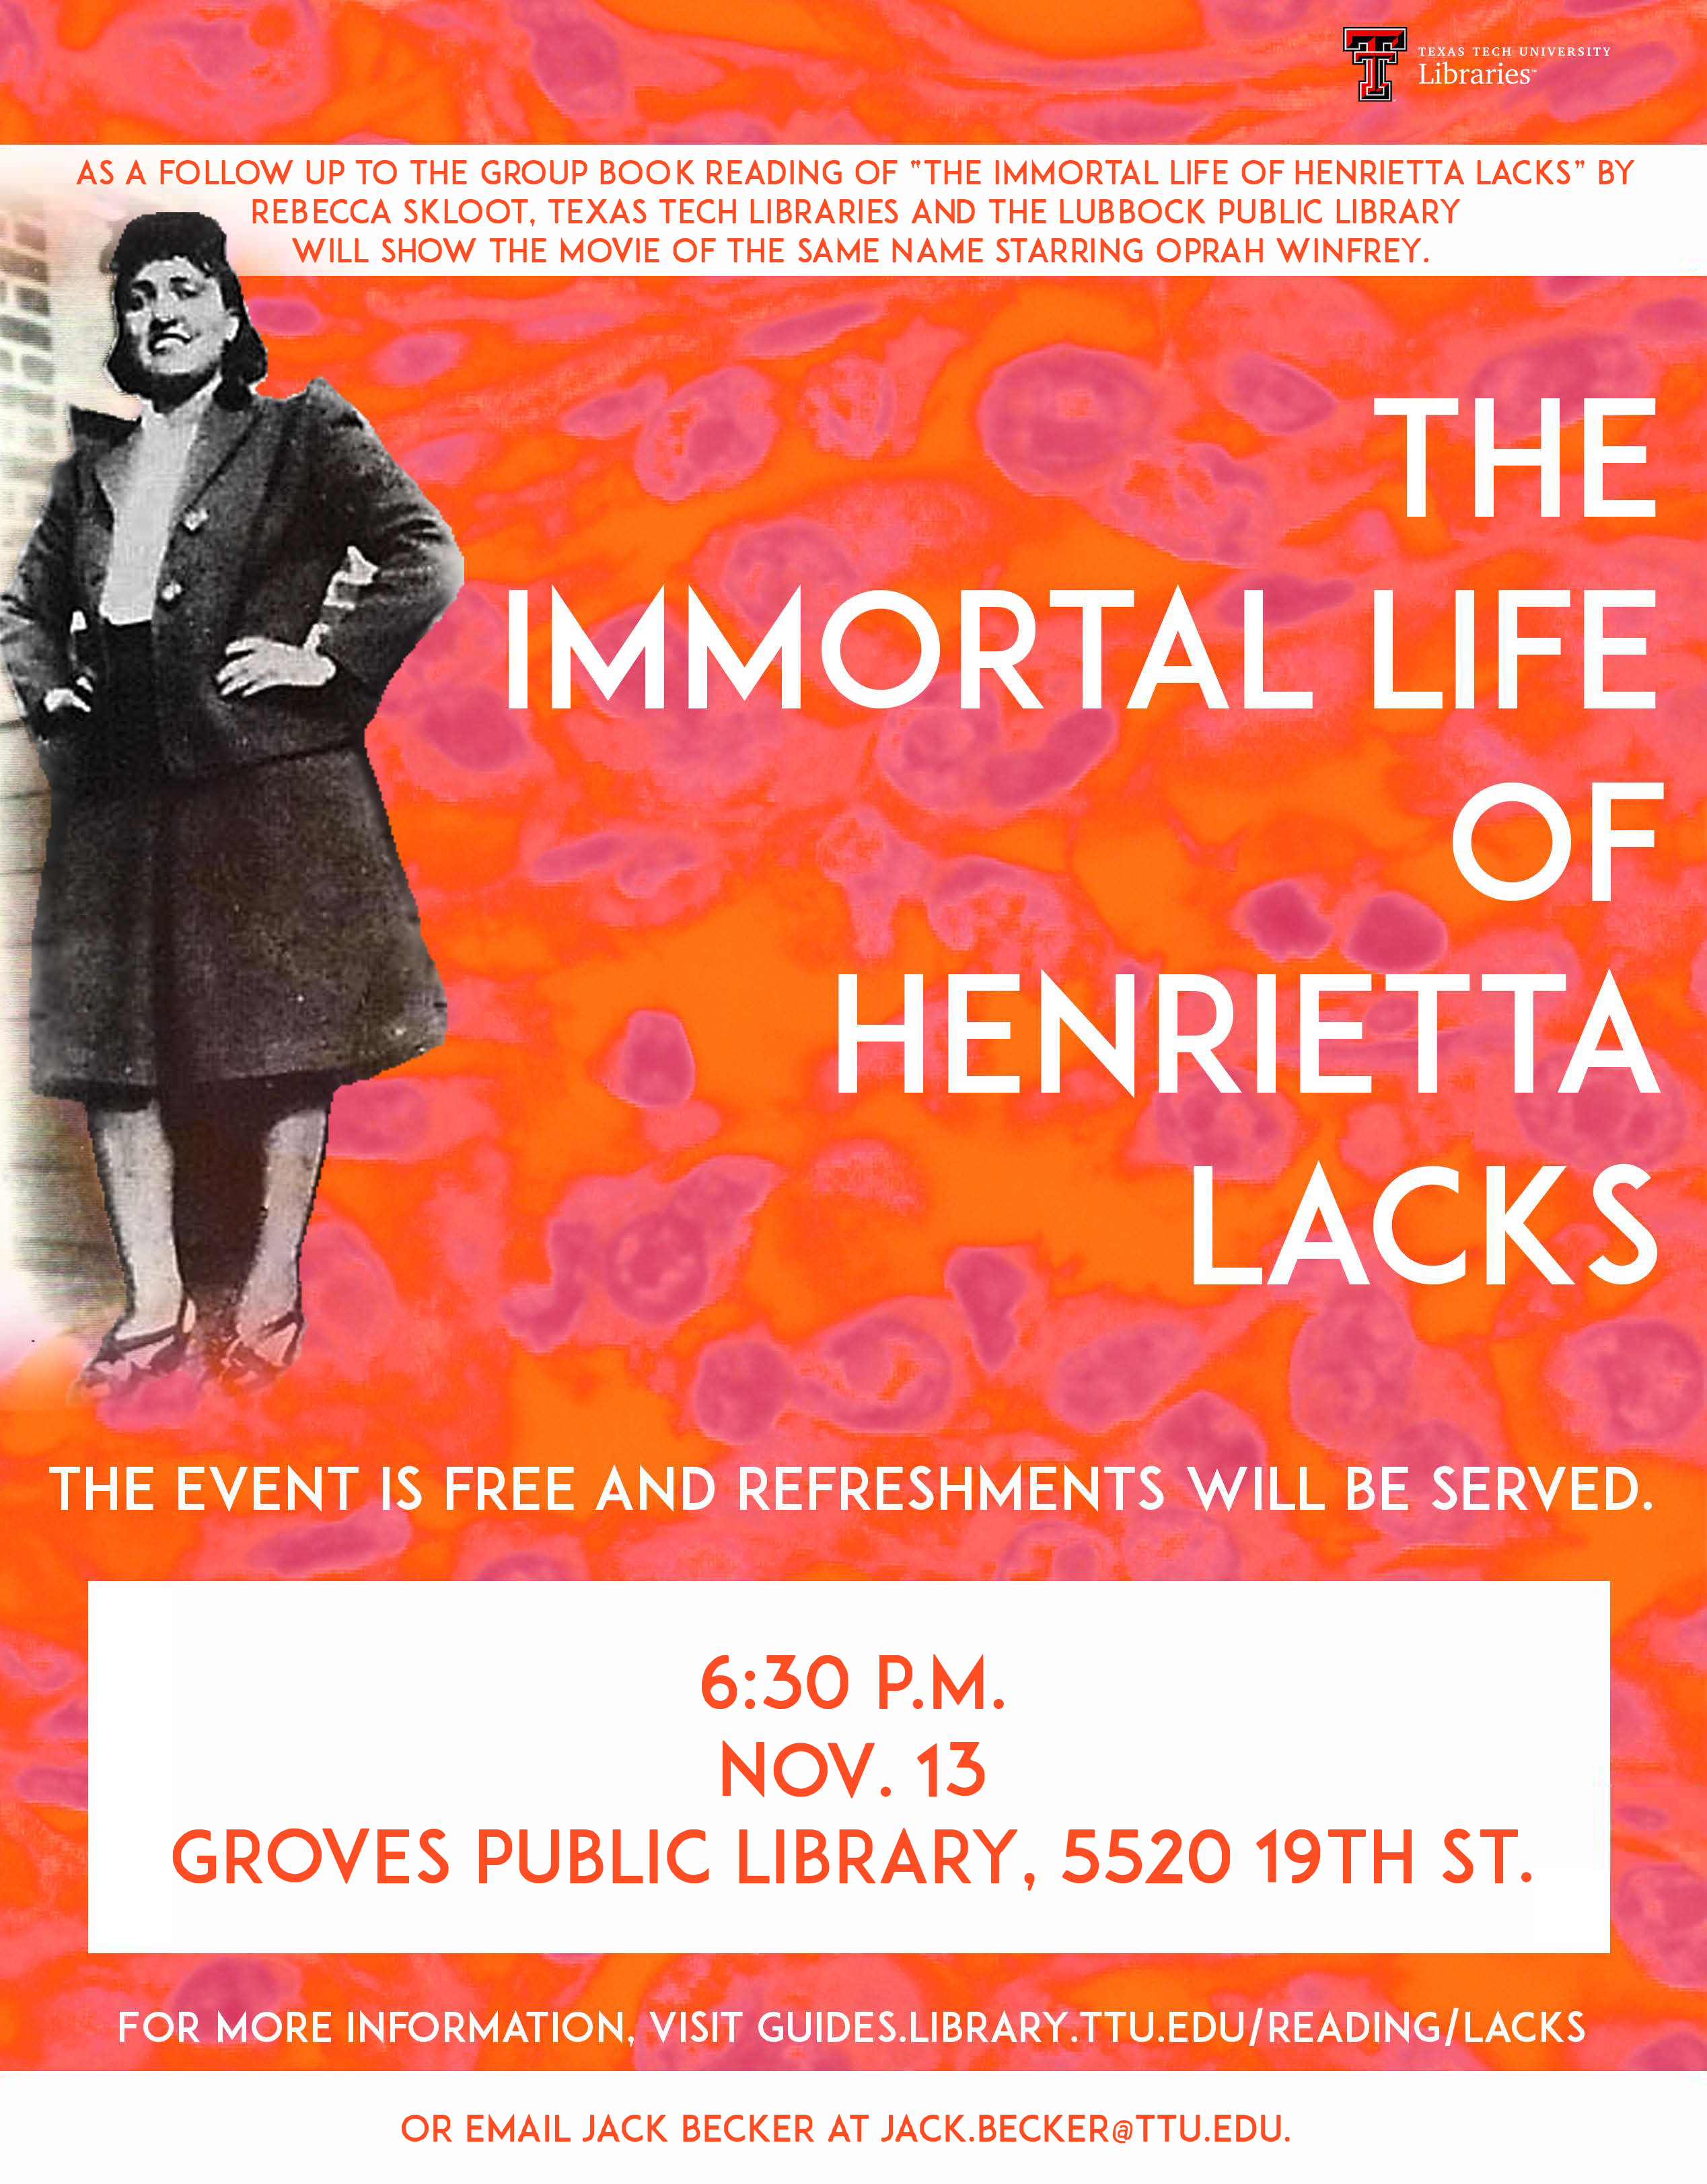 Henrietta Lacks movie screening on November 13